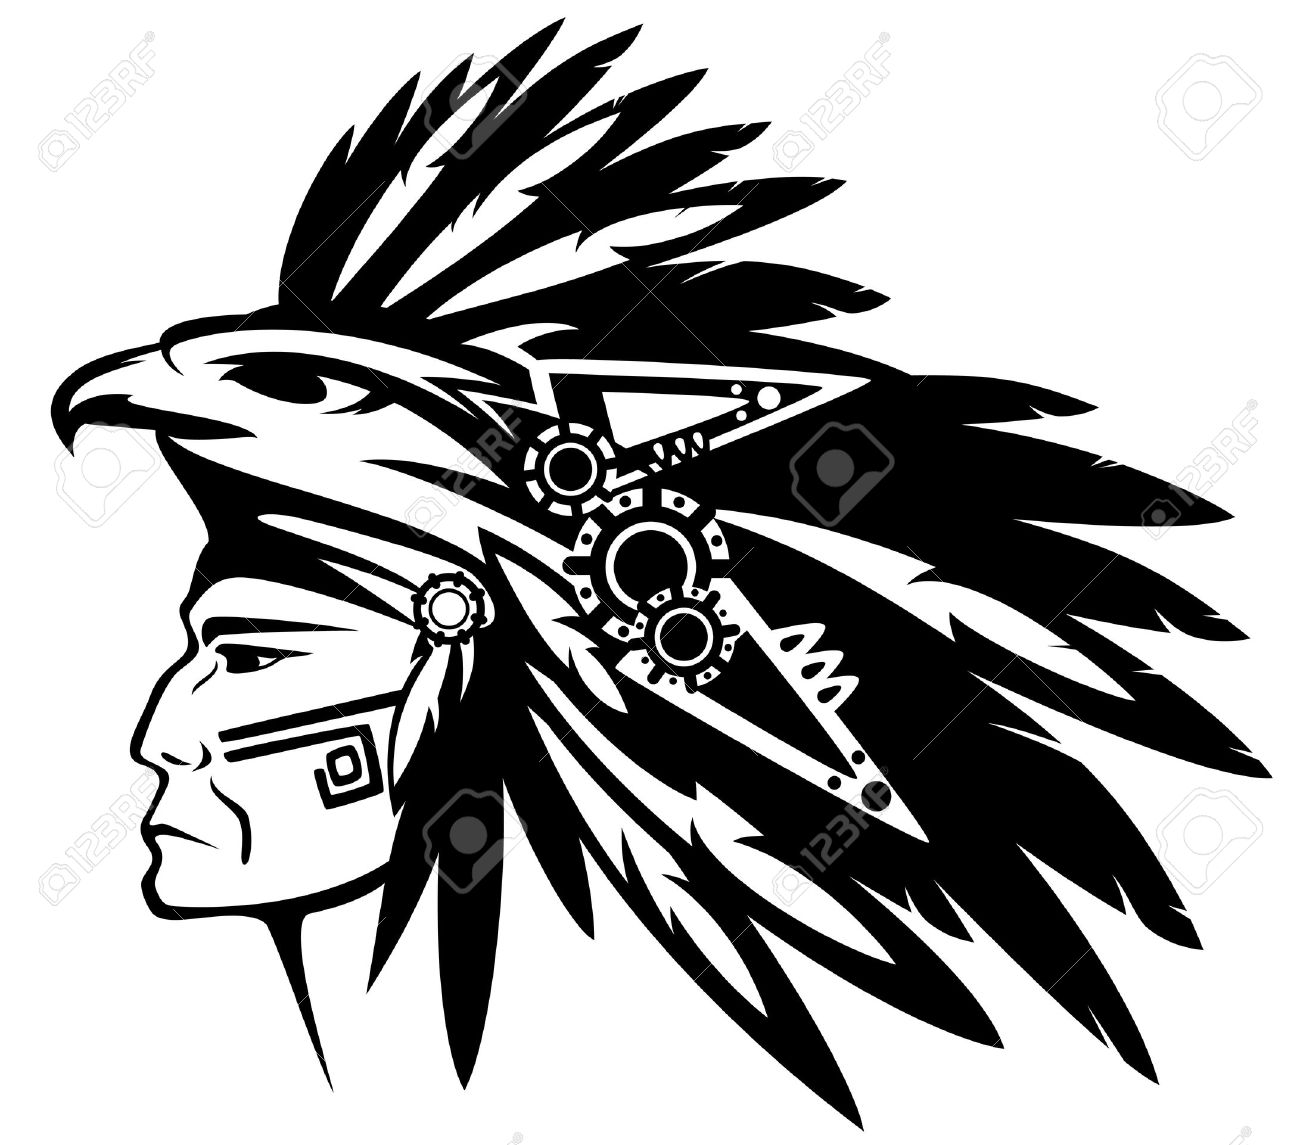 eb4a63837 aztec tribe warrior wearing feather headdress with eagle profile head -  black and white vector outline